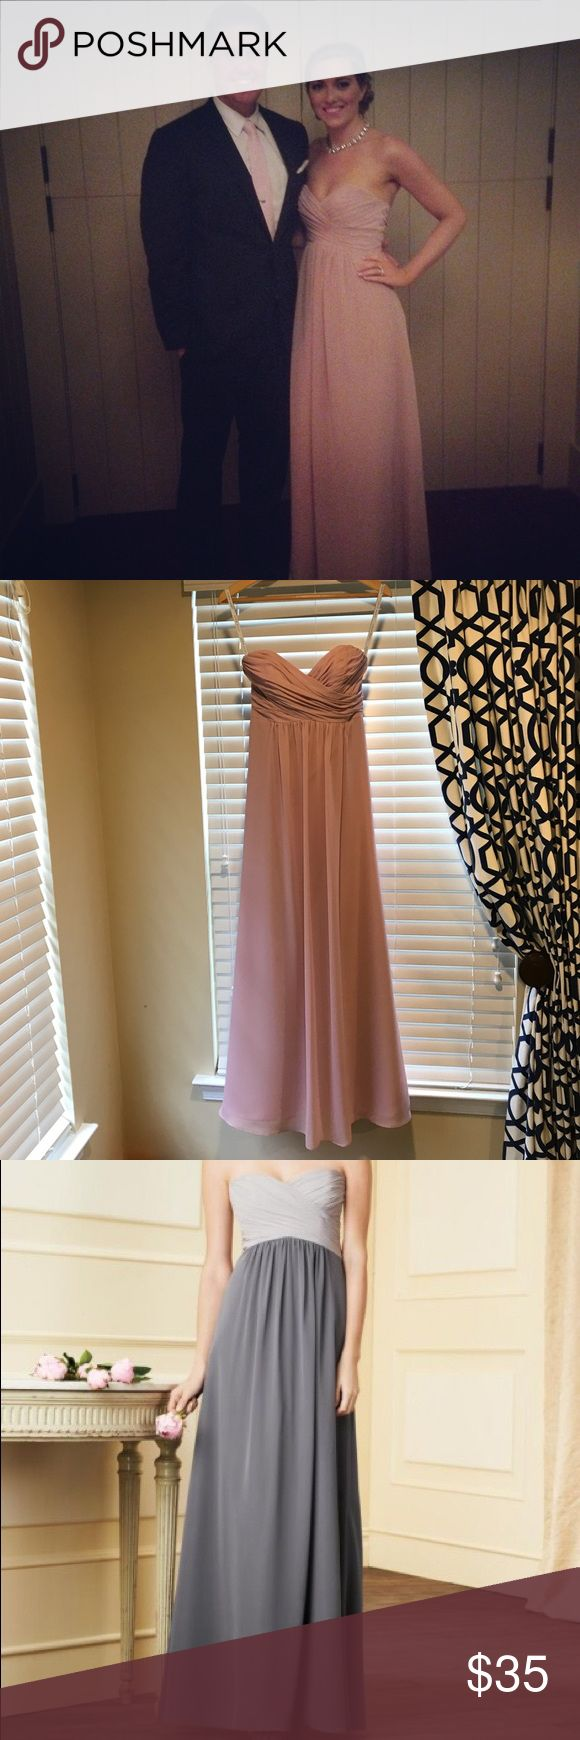 ALFRED ANGELO BRIDESMAIDS 7289L Romantic color Ice Pink long bridesmaid gown with draped sweetheart neckline and shirred skirt. Can also be worn for a black tie wedding, prom, or gala.   52 in total length 27 inches are empire waist (right below bra line). Size 2  Worn one time and dry cleaned after wear. Worn with nude heals. Alfred Angelo Dresses Prom